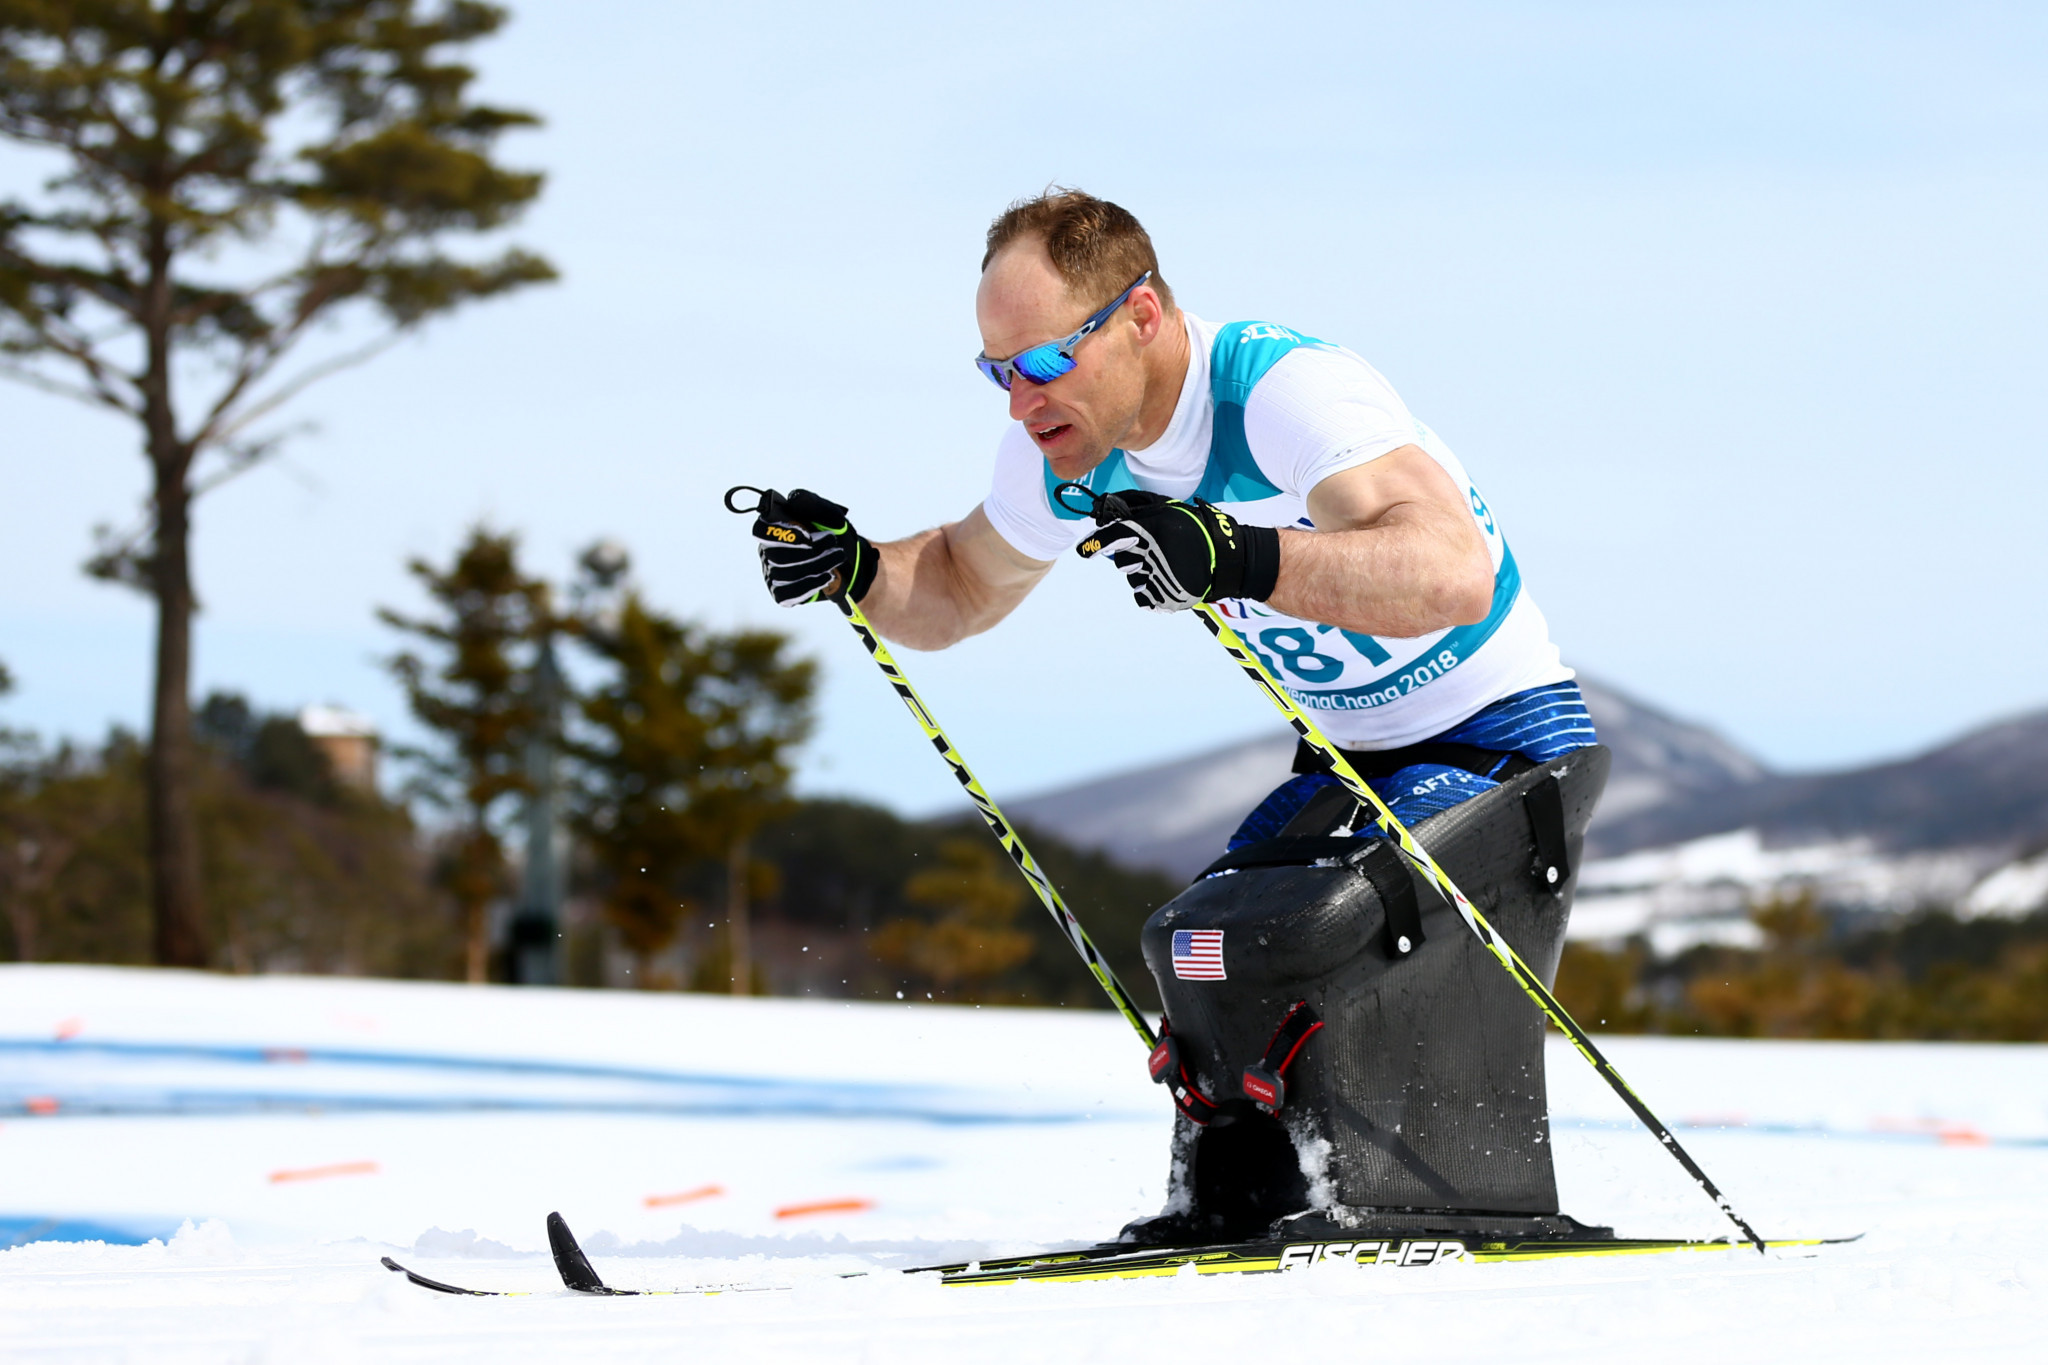 Para Nordic skier Daniel Cnossen won the Team USA male athlete of the month award for January ©Getty Images